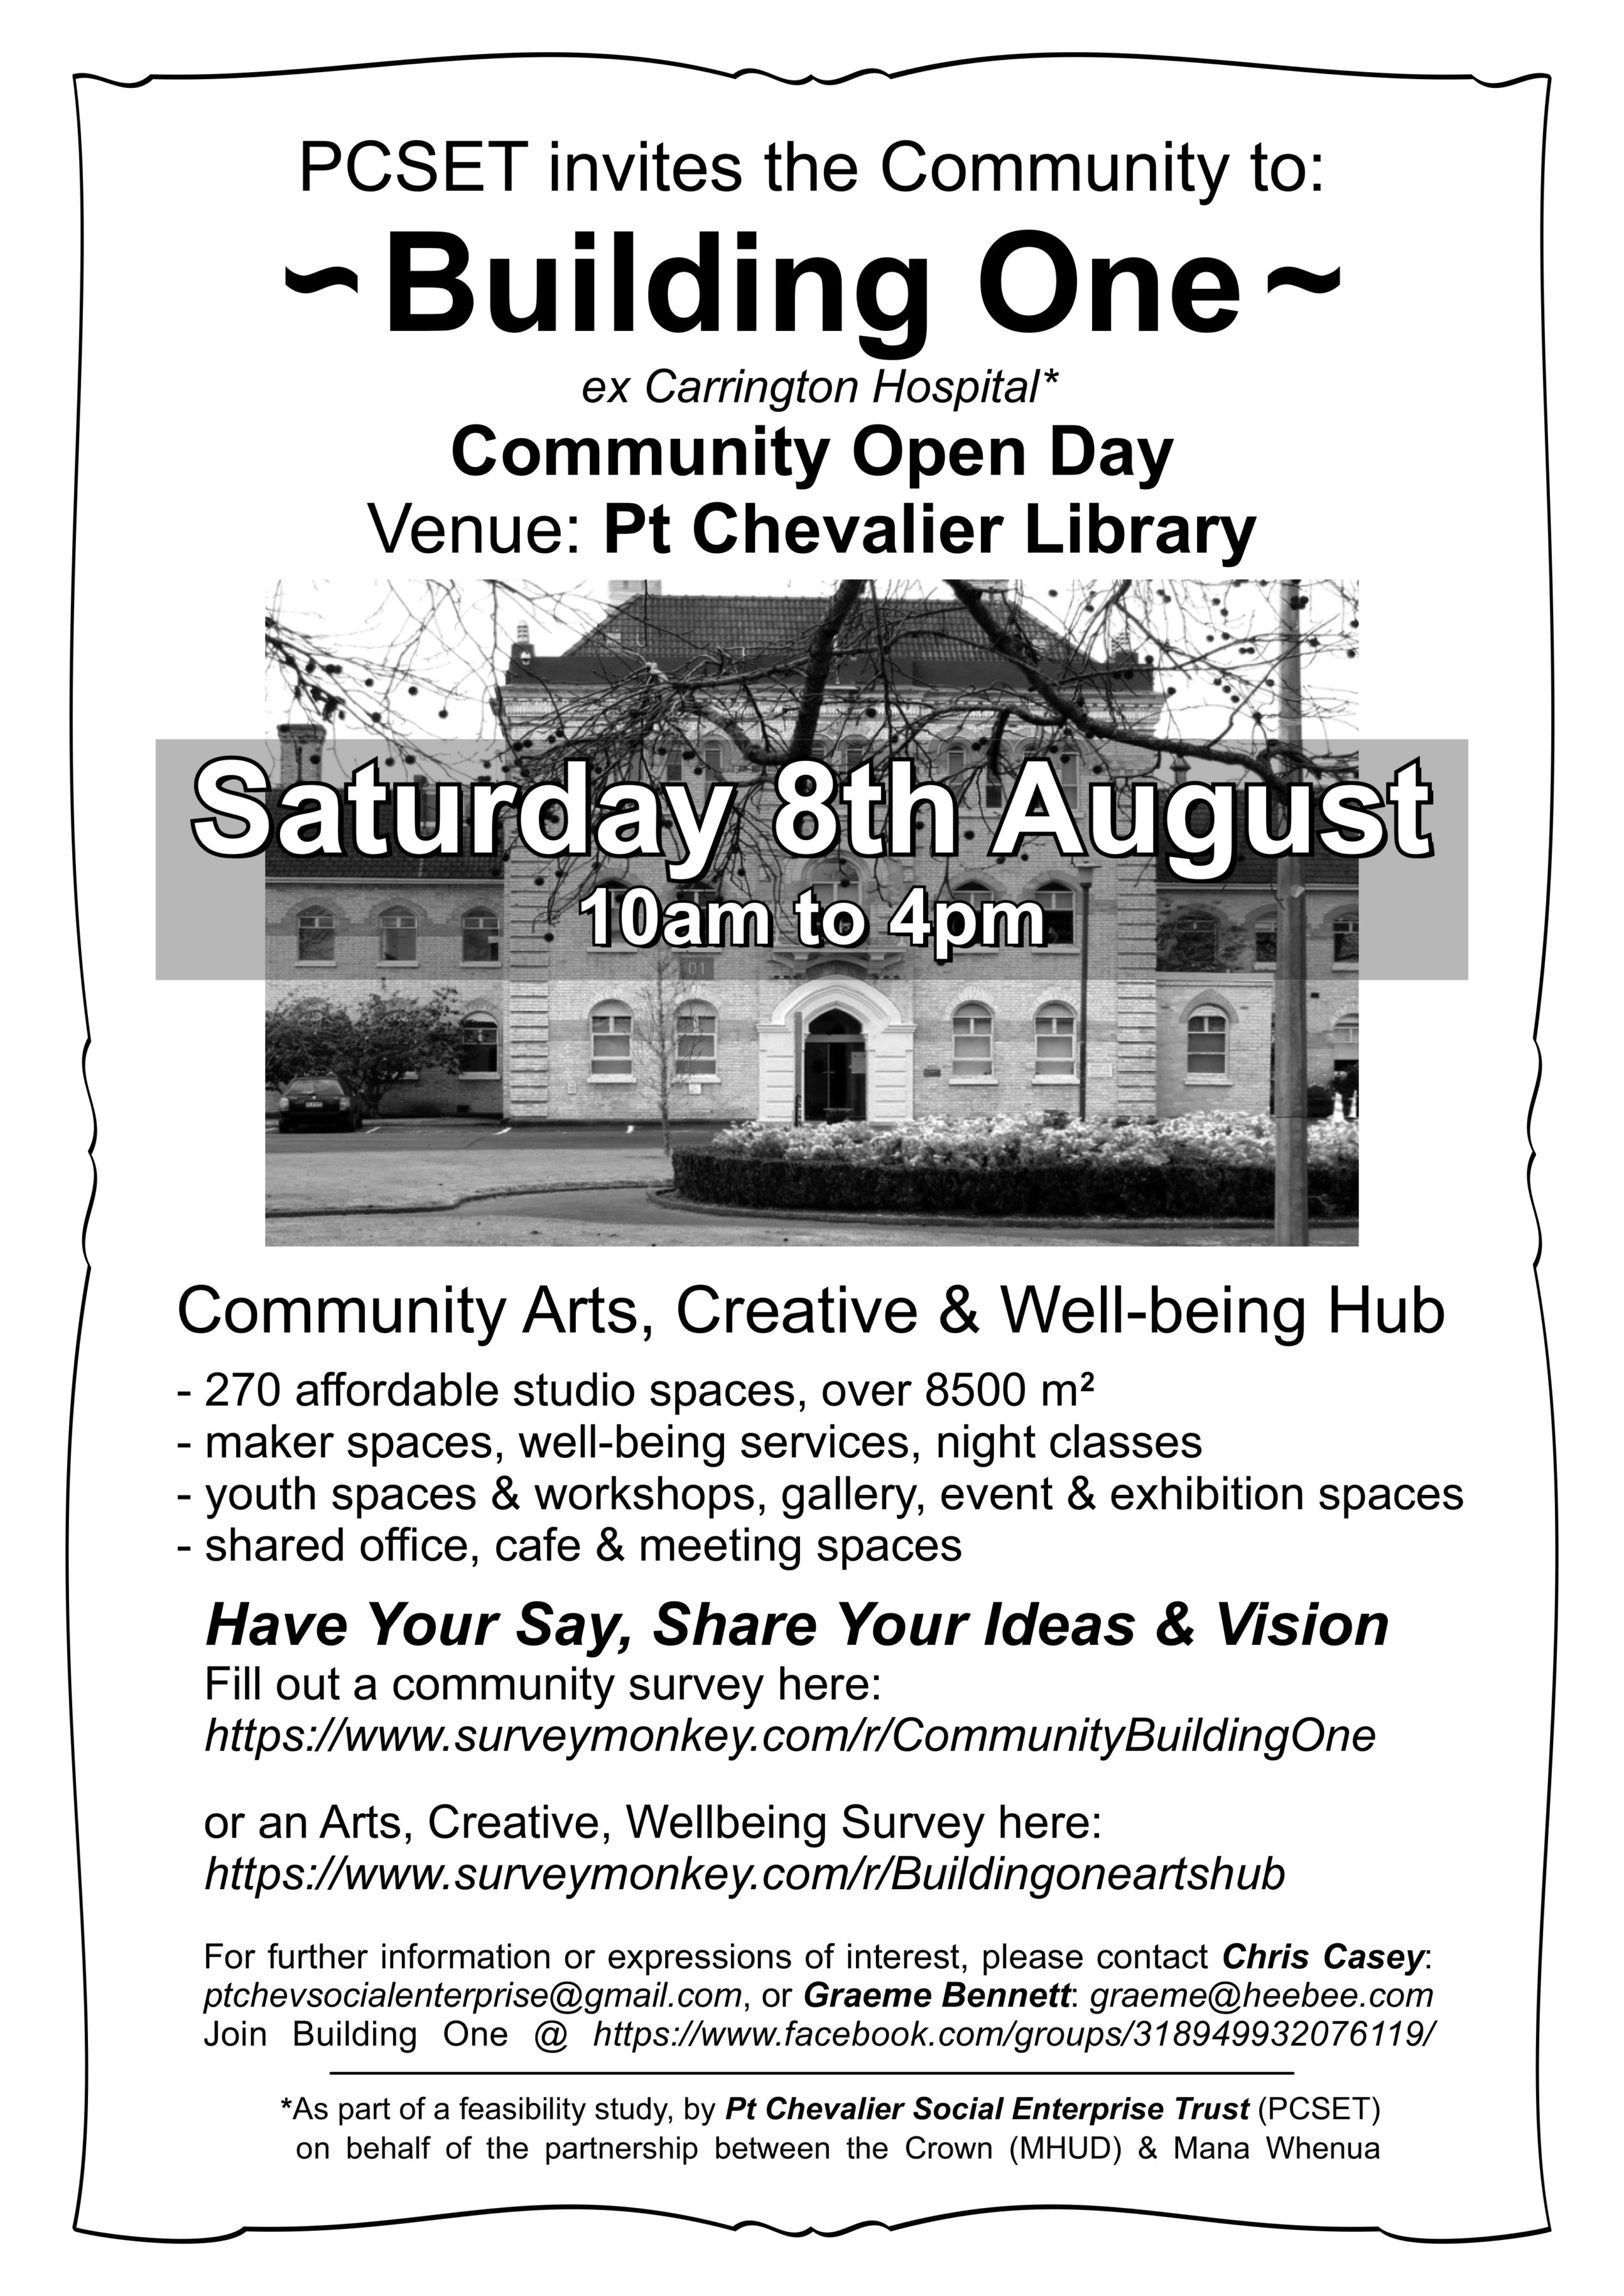 Community Arts, Creative & Well-being Hub